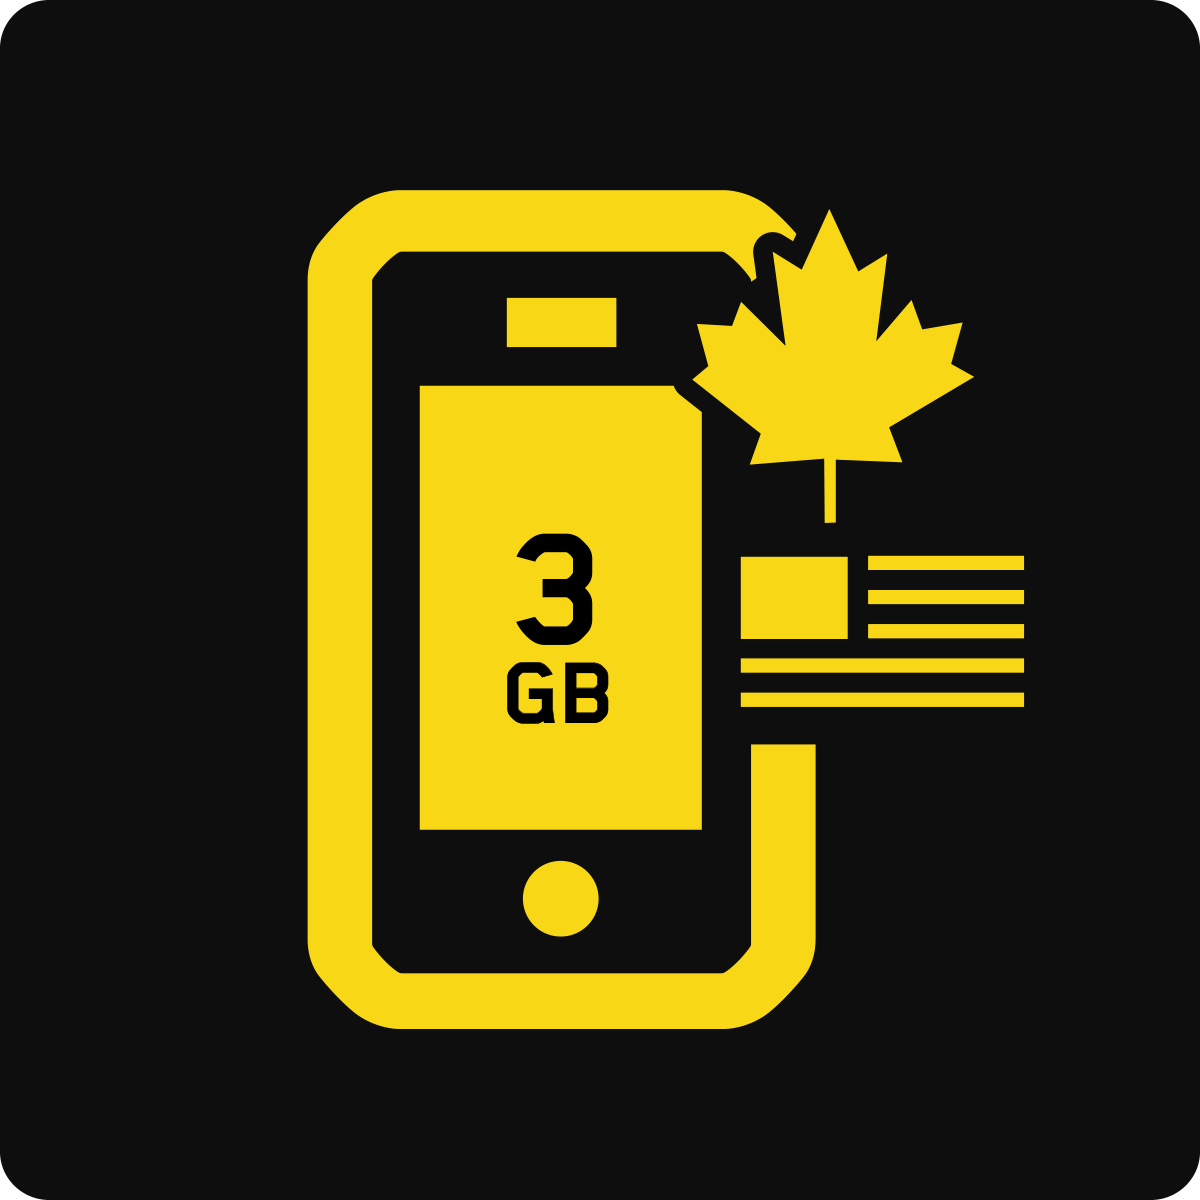 Canada-US 3GB Business Mobile plan